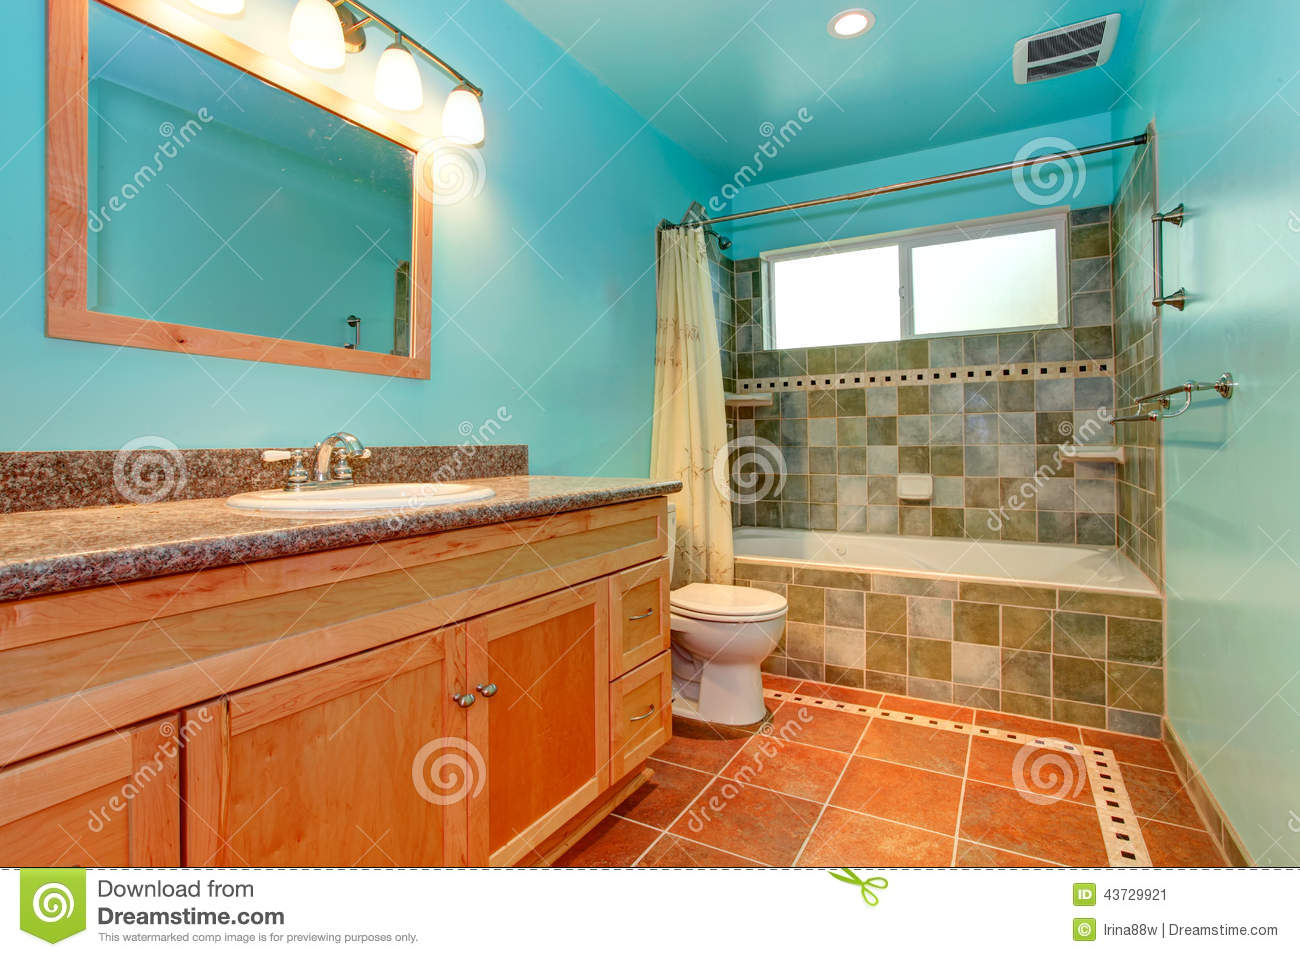 Bright colored bathrooms - Royalty Free Stock Photo Download Bathroom In Bright Blue Color